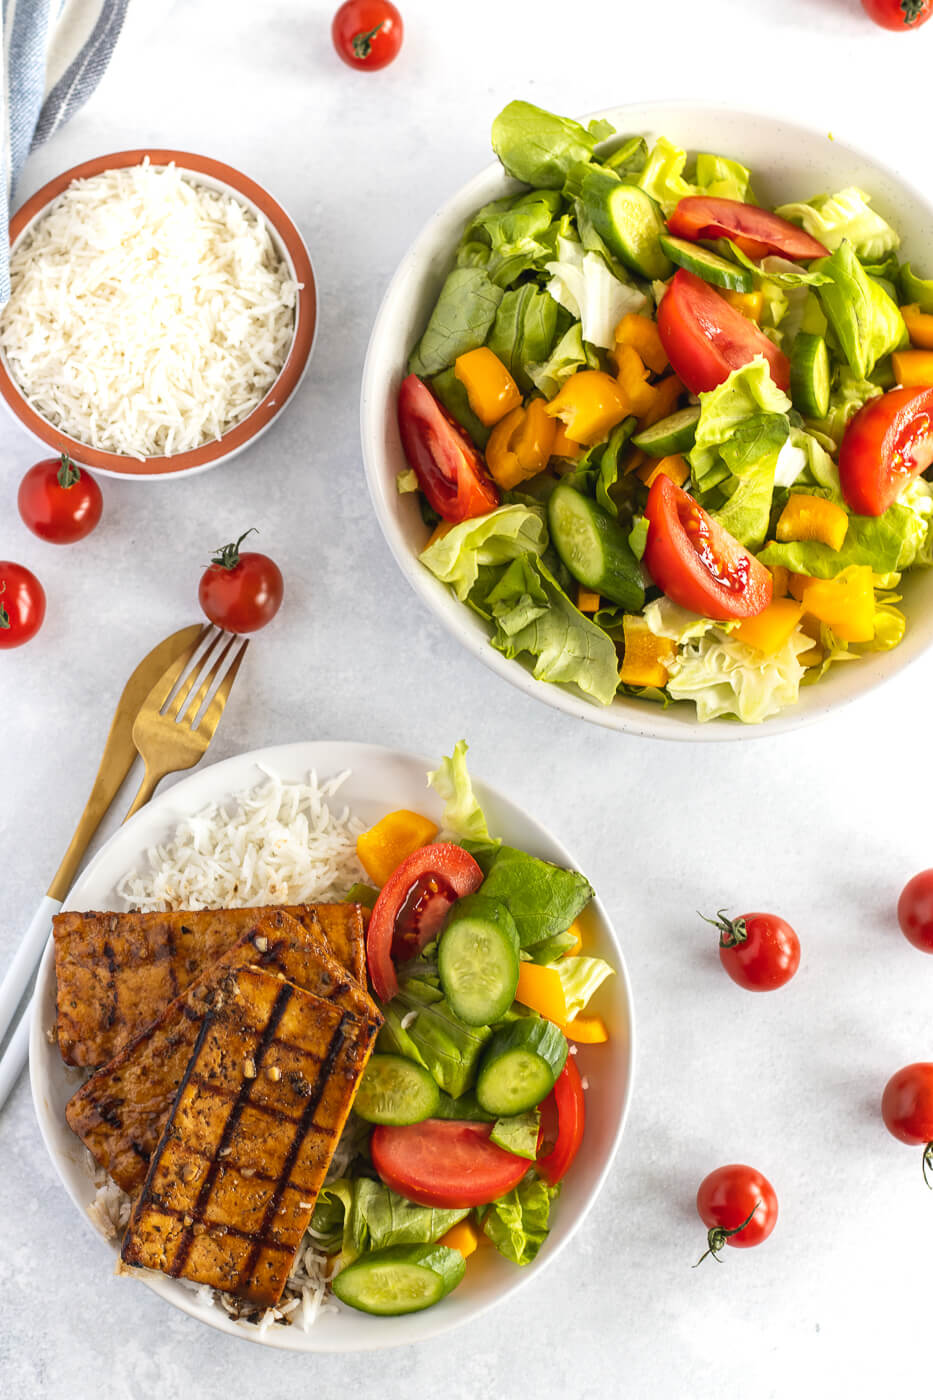 An overhead photo of grilled tofu on top of rice and vegetables. A salad is on the side. This is a great vegetarian BBQ recipe.